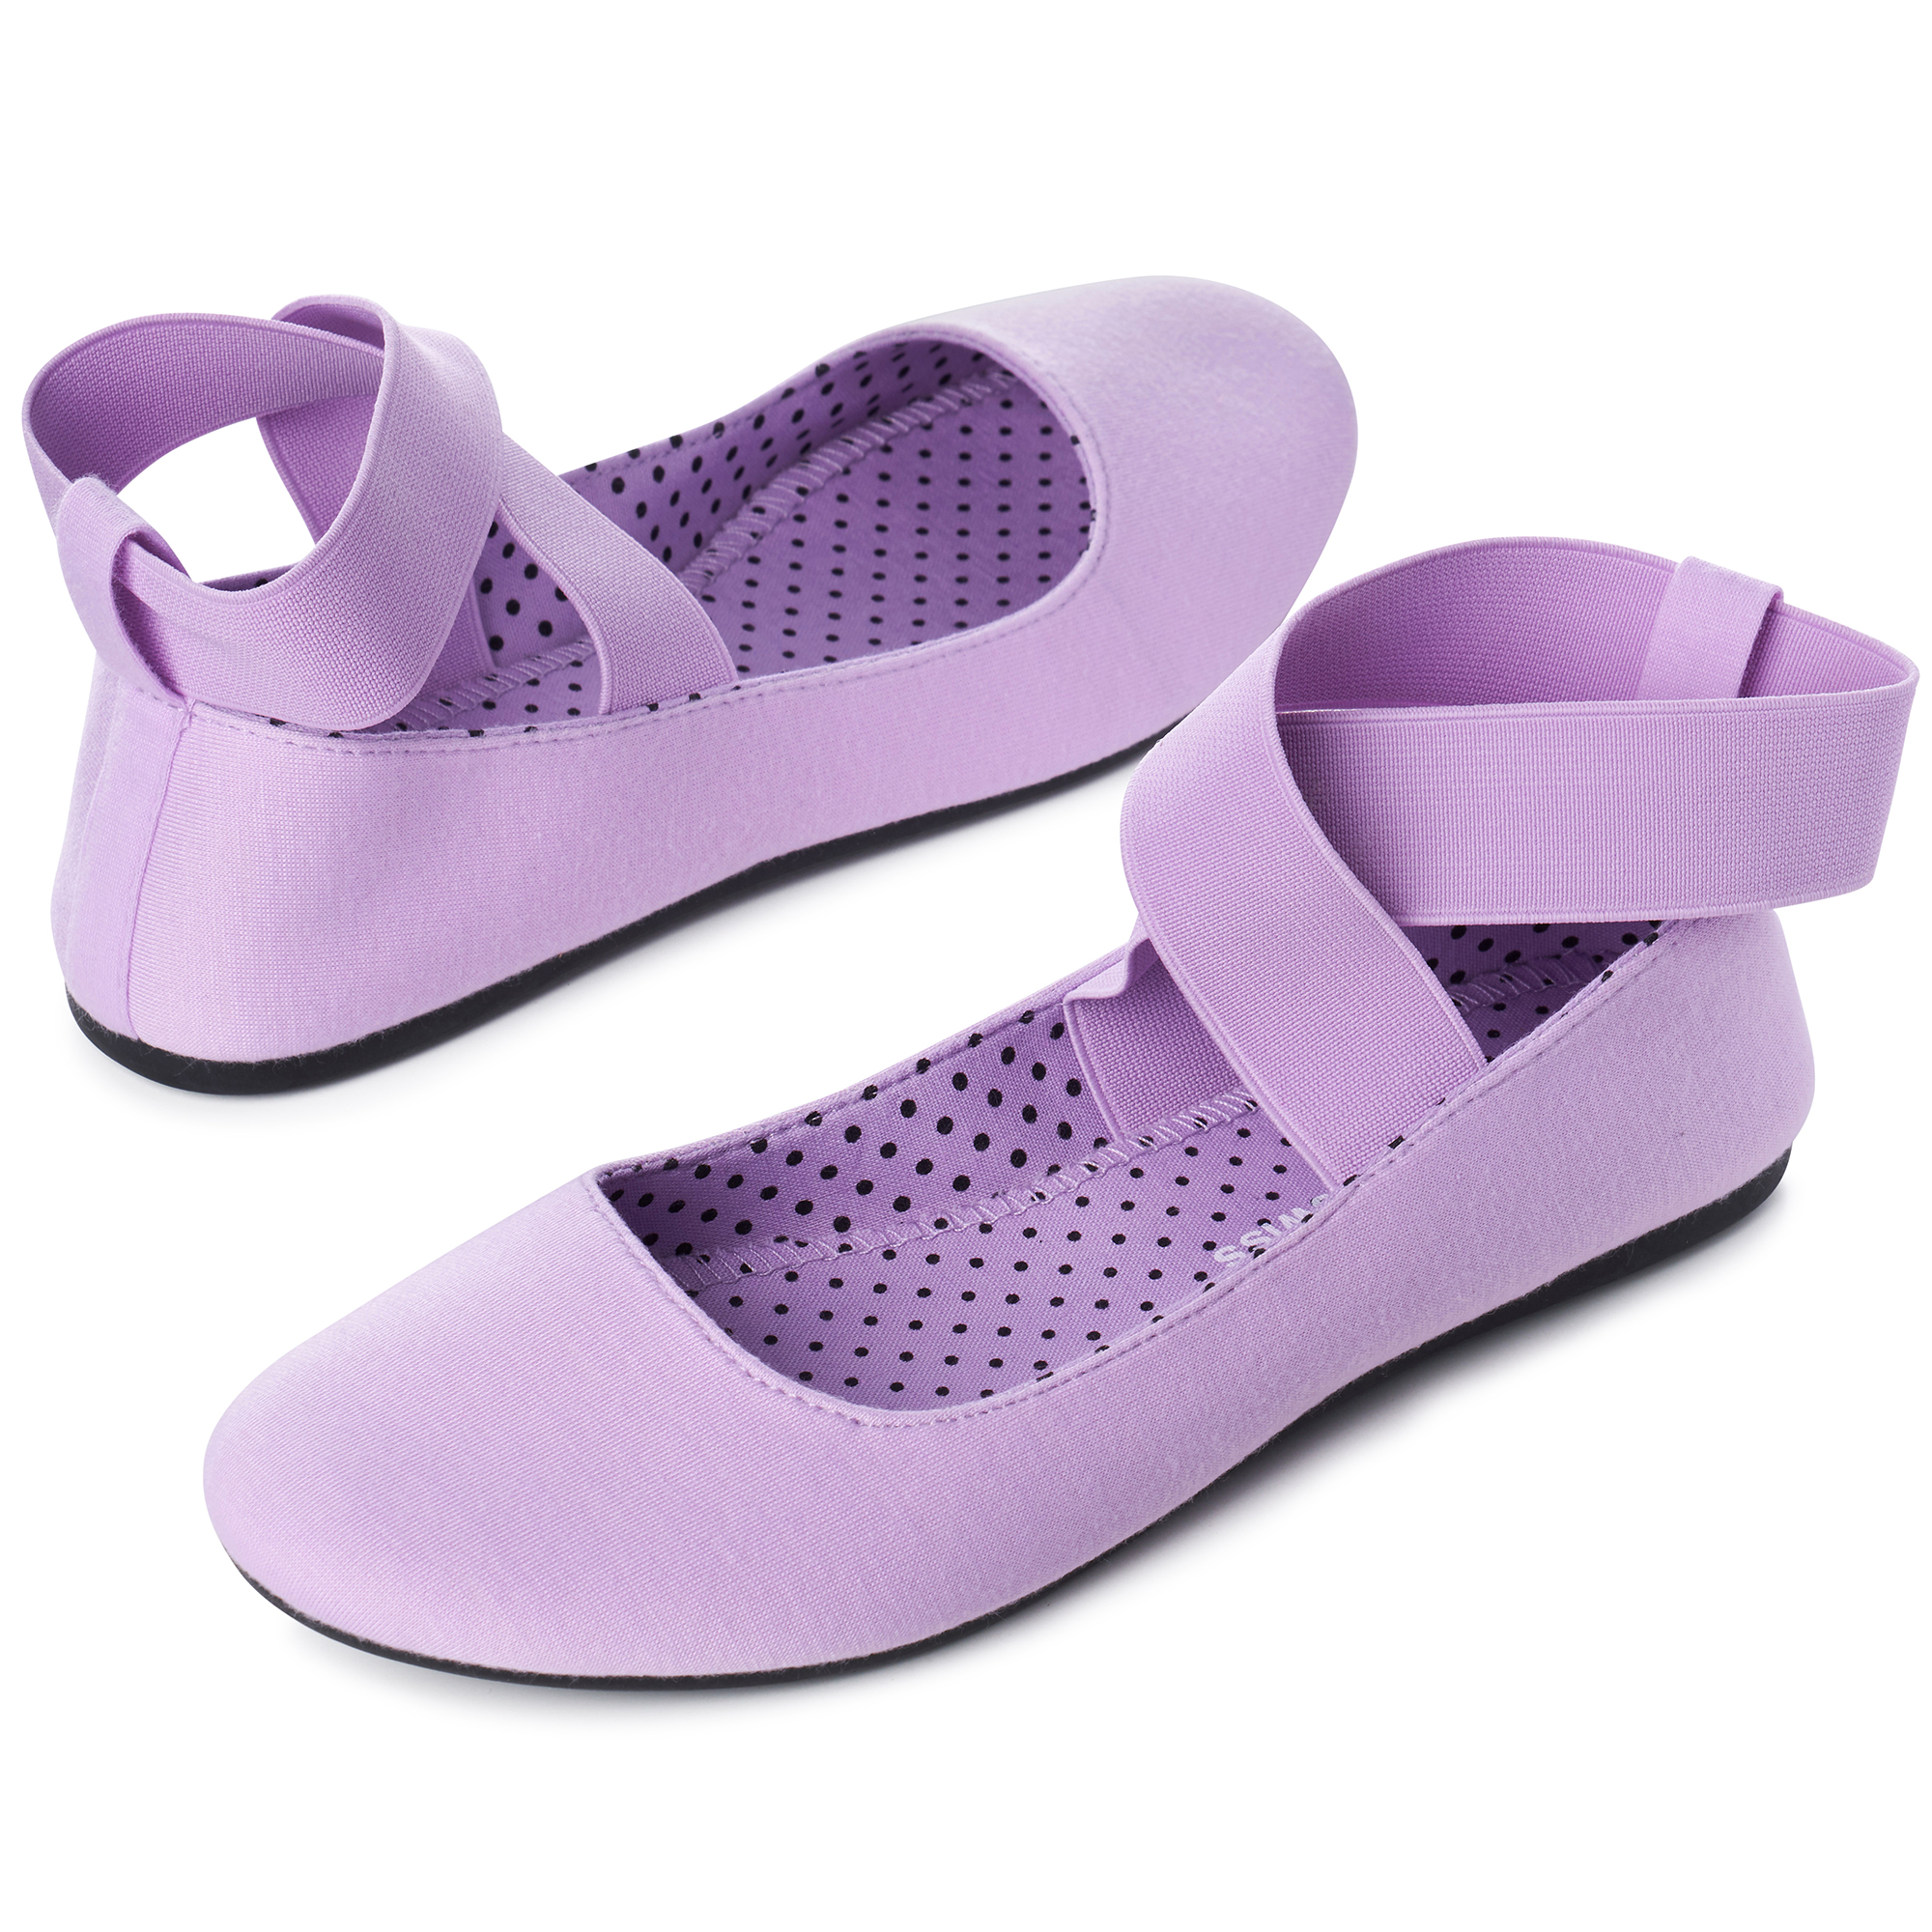 Alpine-Swiss-Peony-Womens-Ballet-Flats-Elastic-Ankle-Strap-Shoes-Slip-On-Loafers thumbnail 56